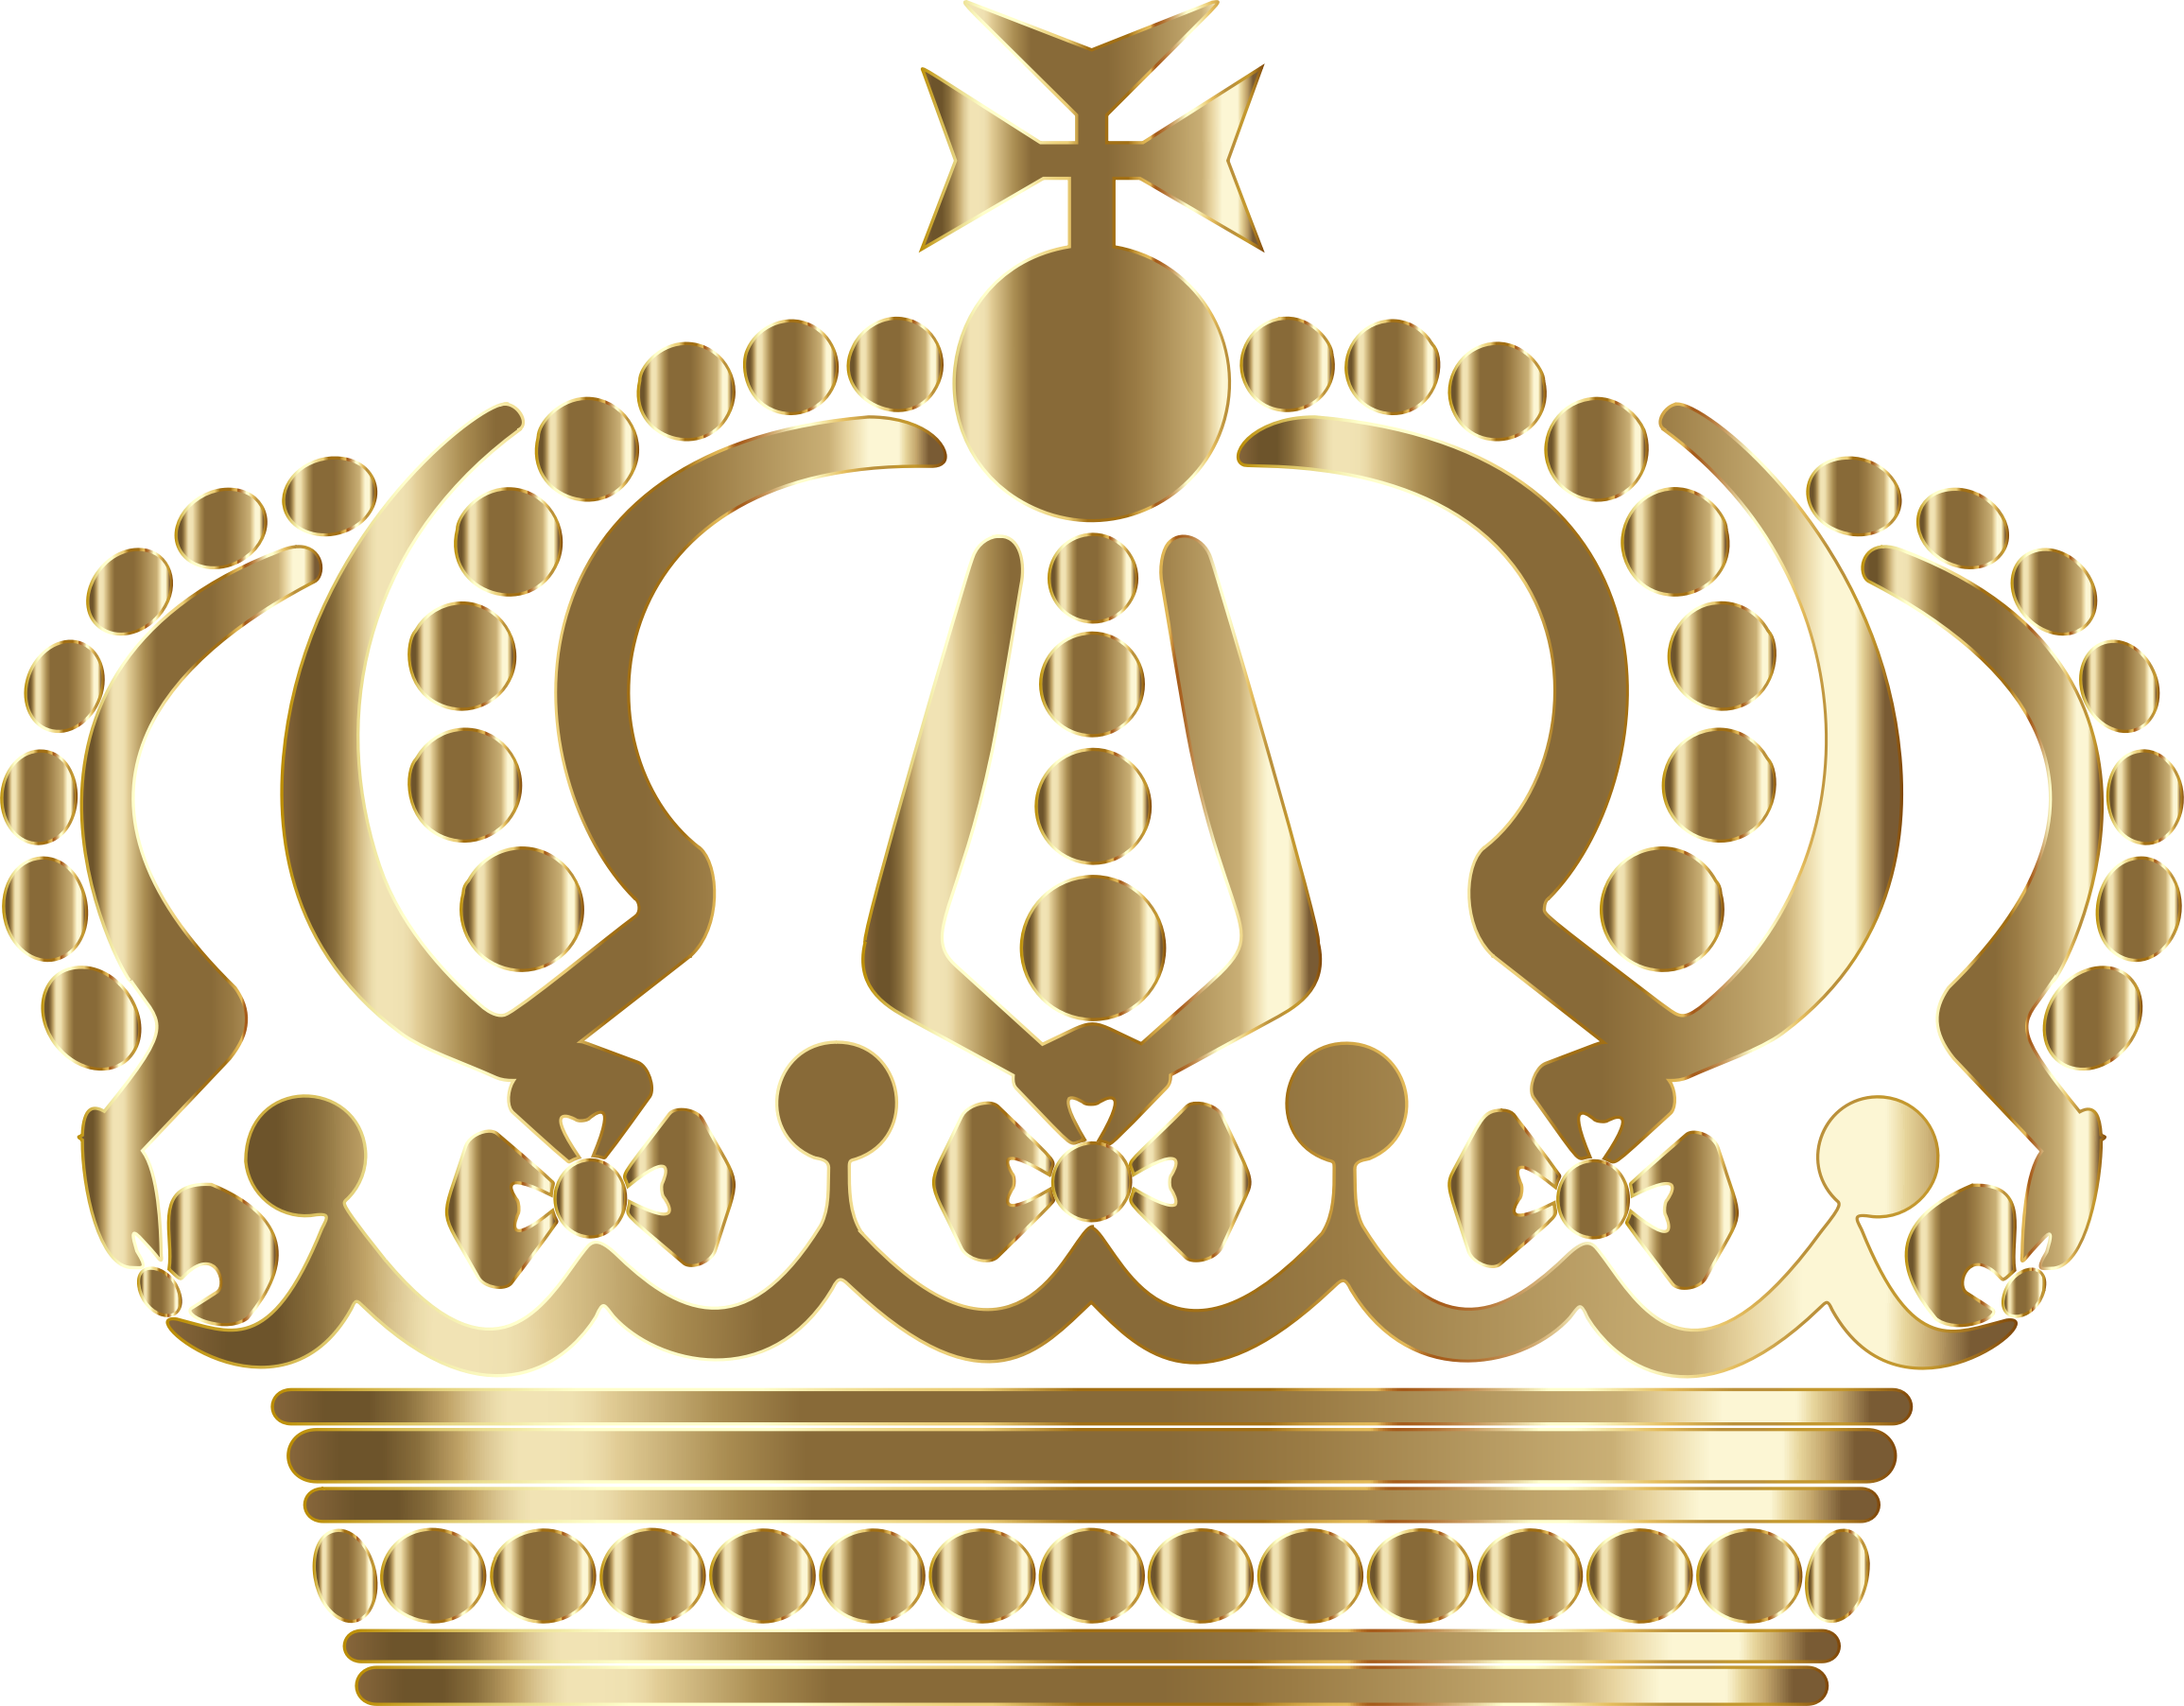 Crown clipart gold banner black and white library Clipart - Gold German Imperial Crown No Background banner black and white library